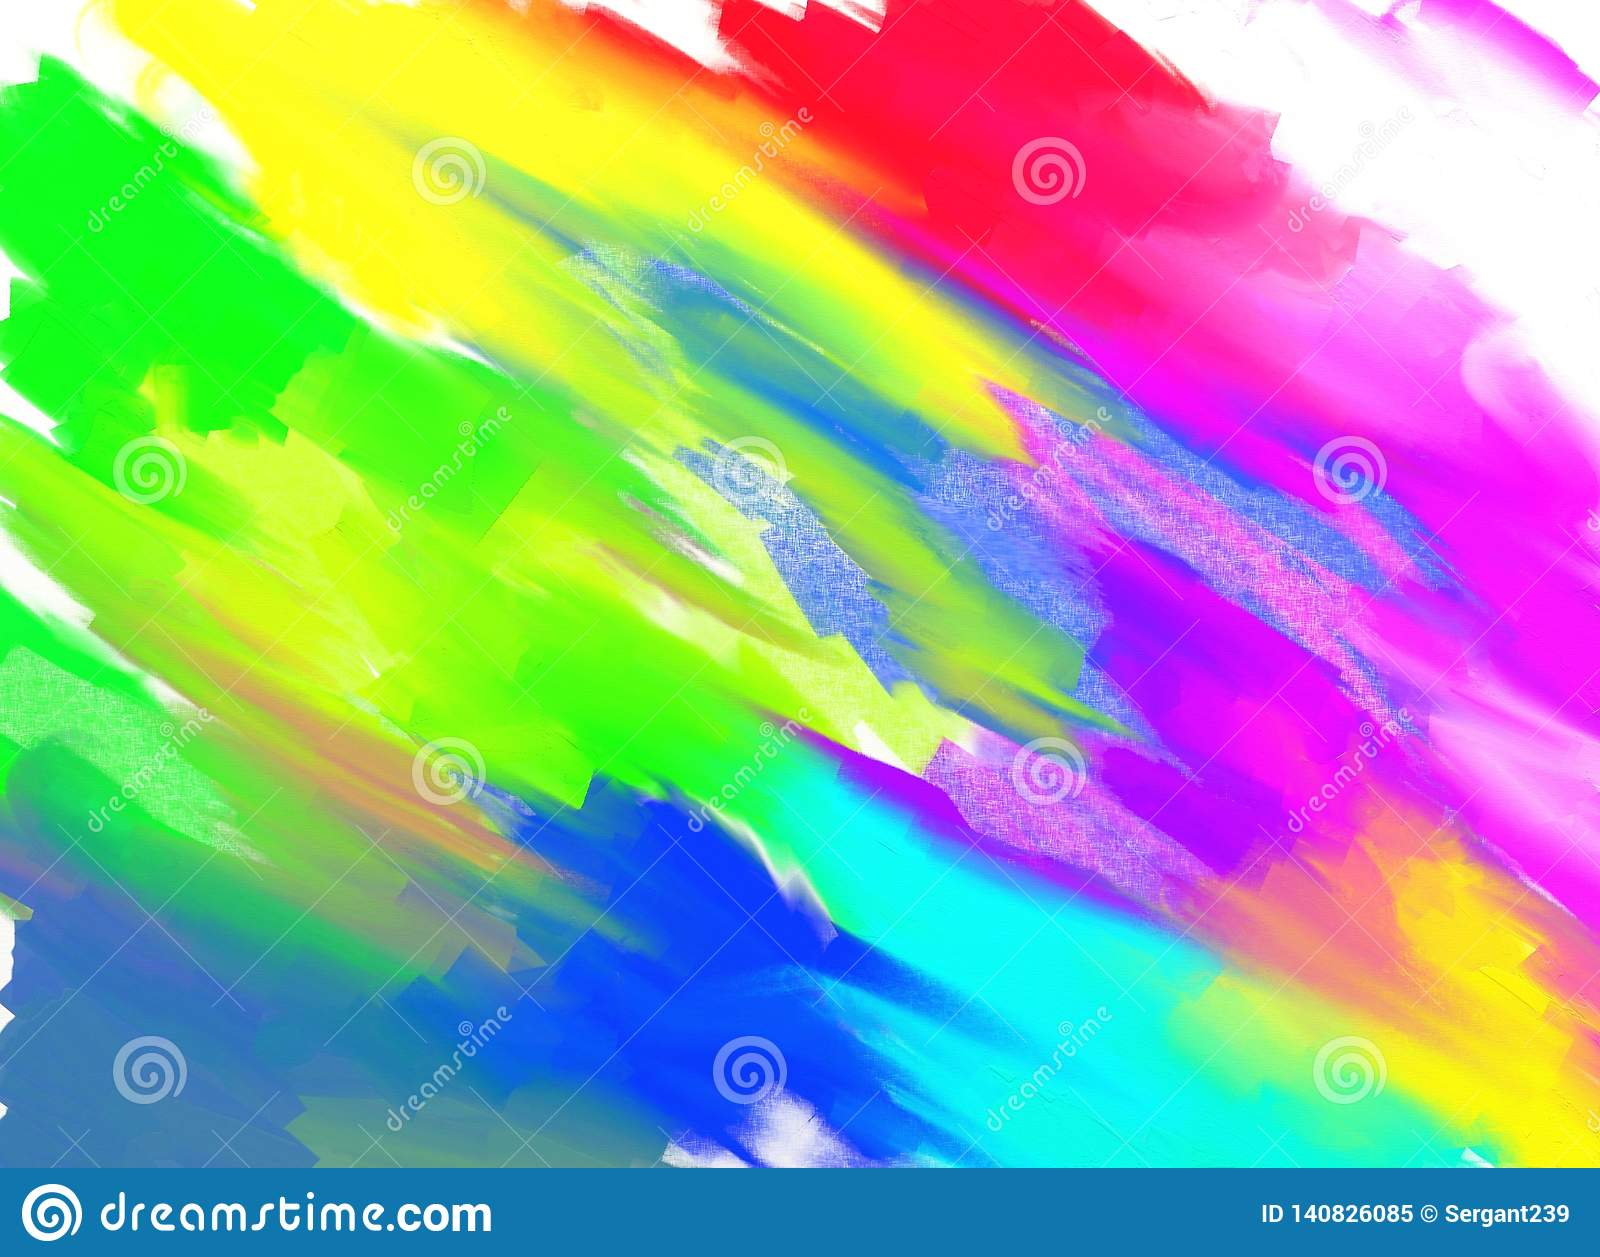 Colorful Textured Background/Abstract Colorful/Backgrounds & Textures Stock  Illustration - Illustration of abstract, illustration: 140826085